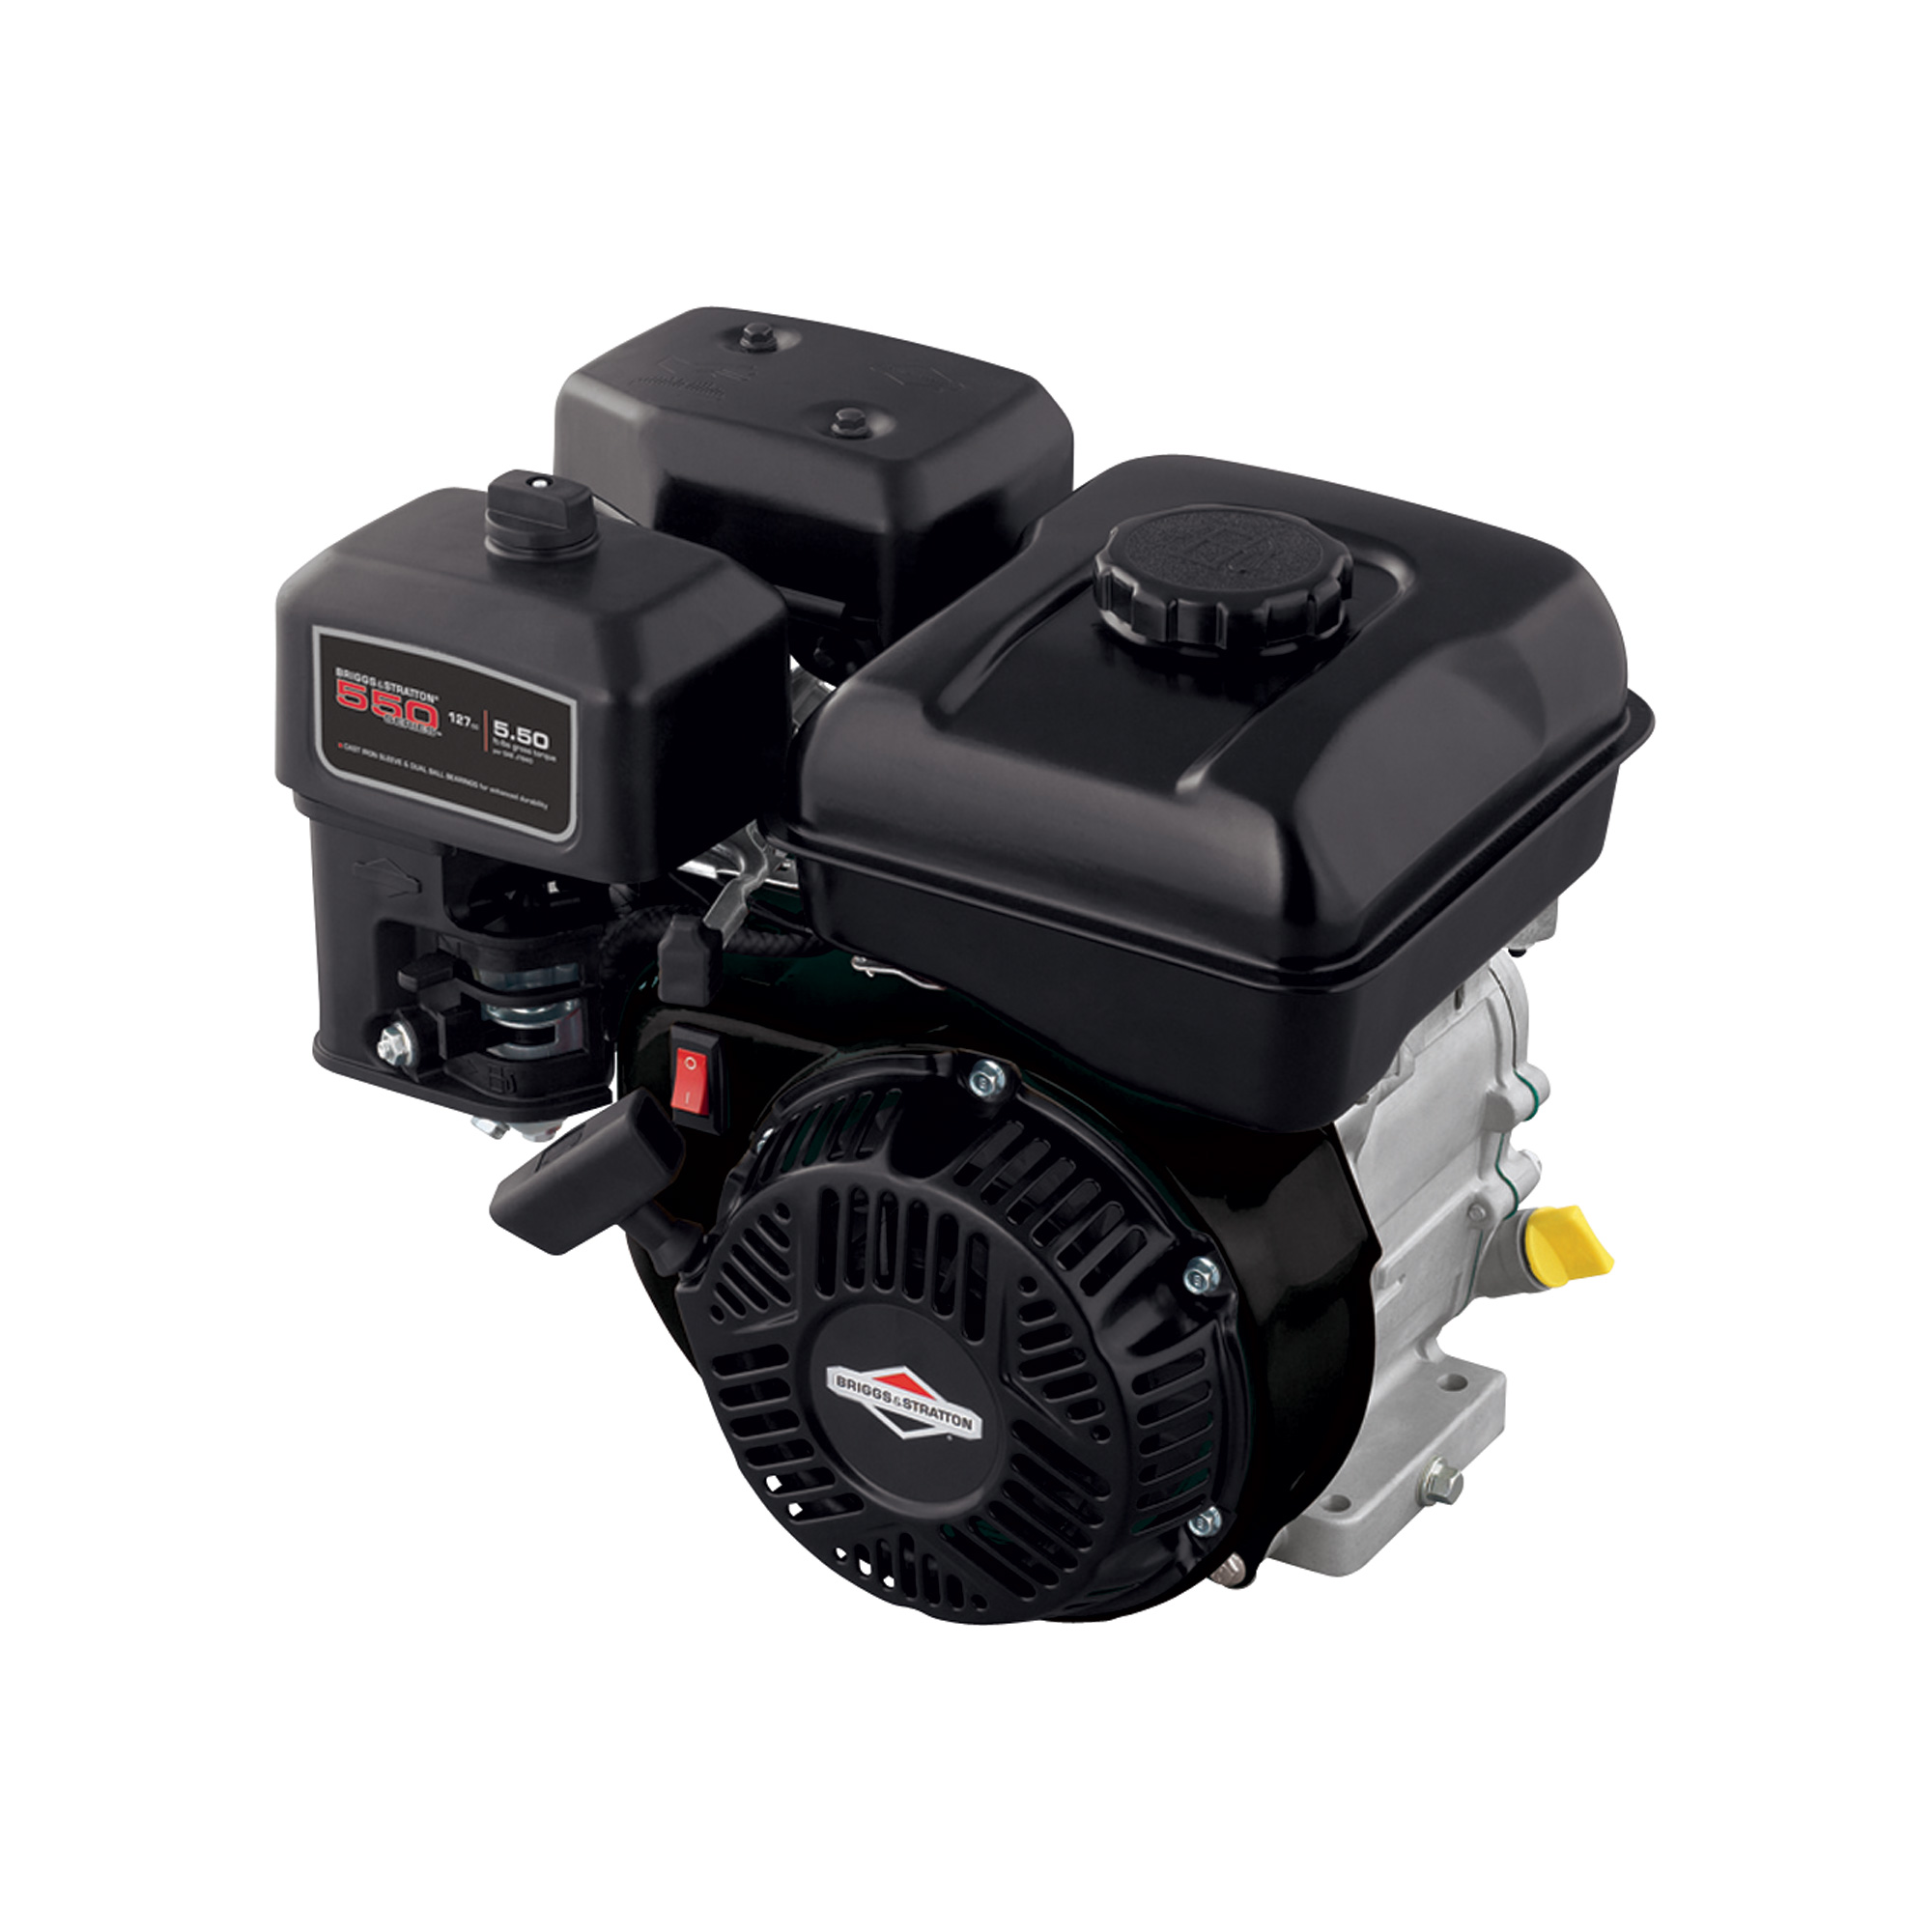 Briggs & Stratton 550 Series Horizontal OHV Engine — 127cc, 5/8in  x 2  27/64in  Shaft, Model# 83132-1040-F1